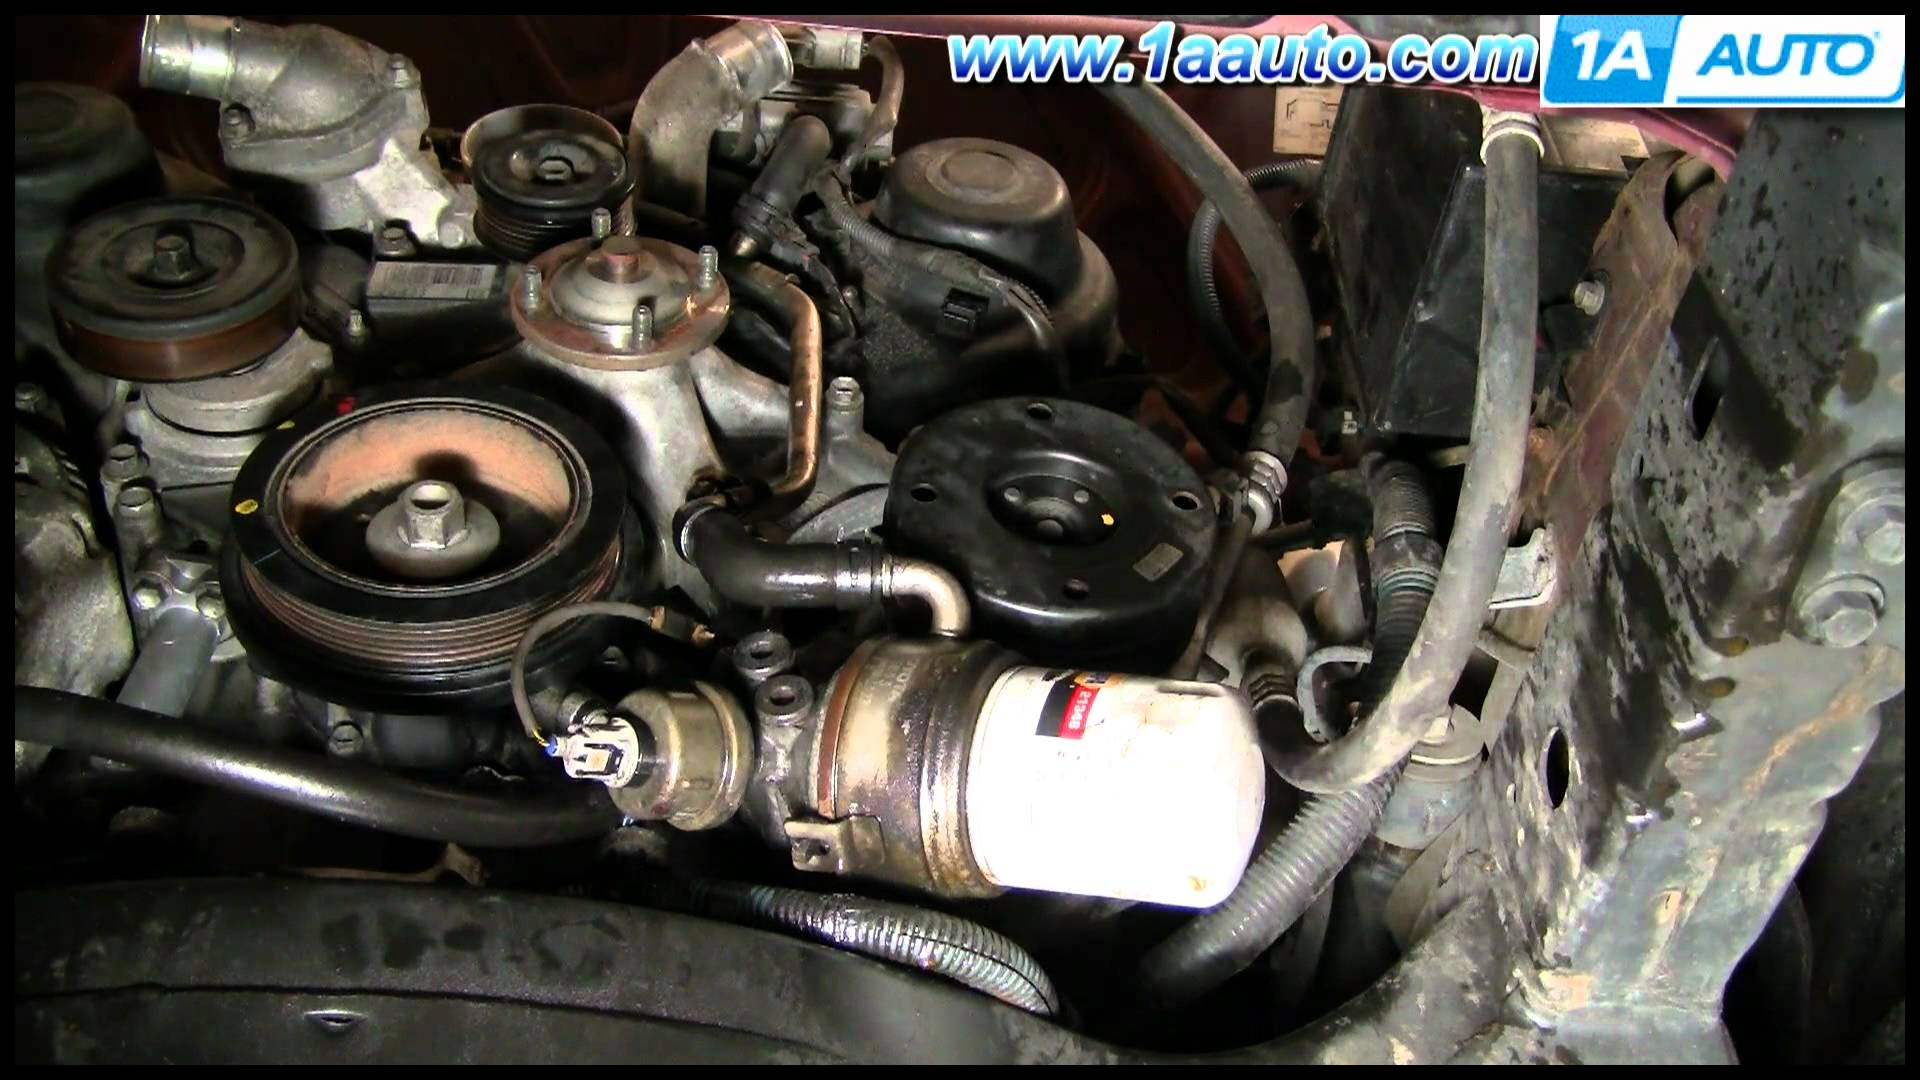 How To Replace Toyota Tundra Timing Belt 2002 V8 Disassemble Front of Engine PART 3 1AAuto